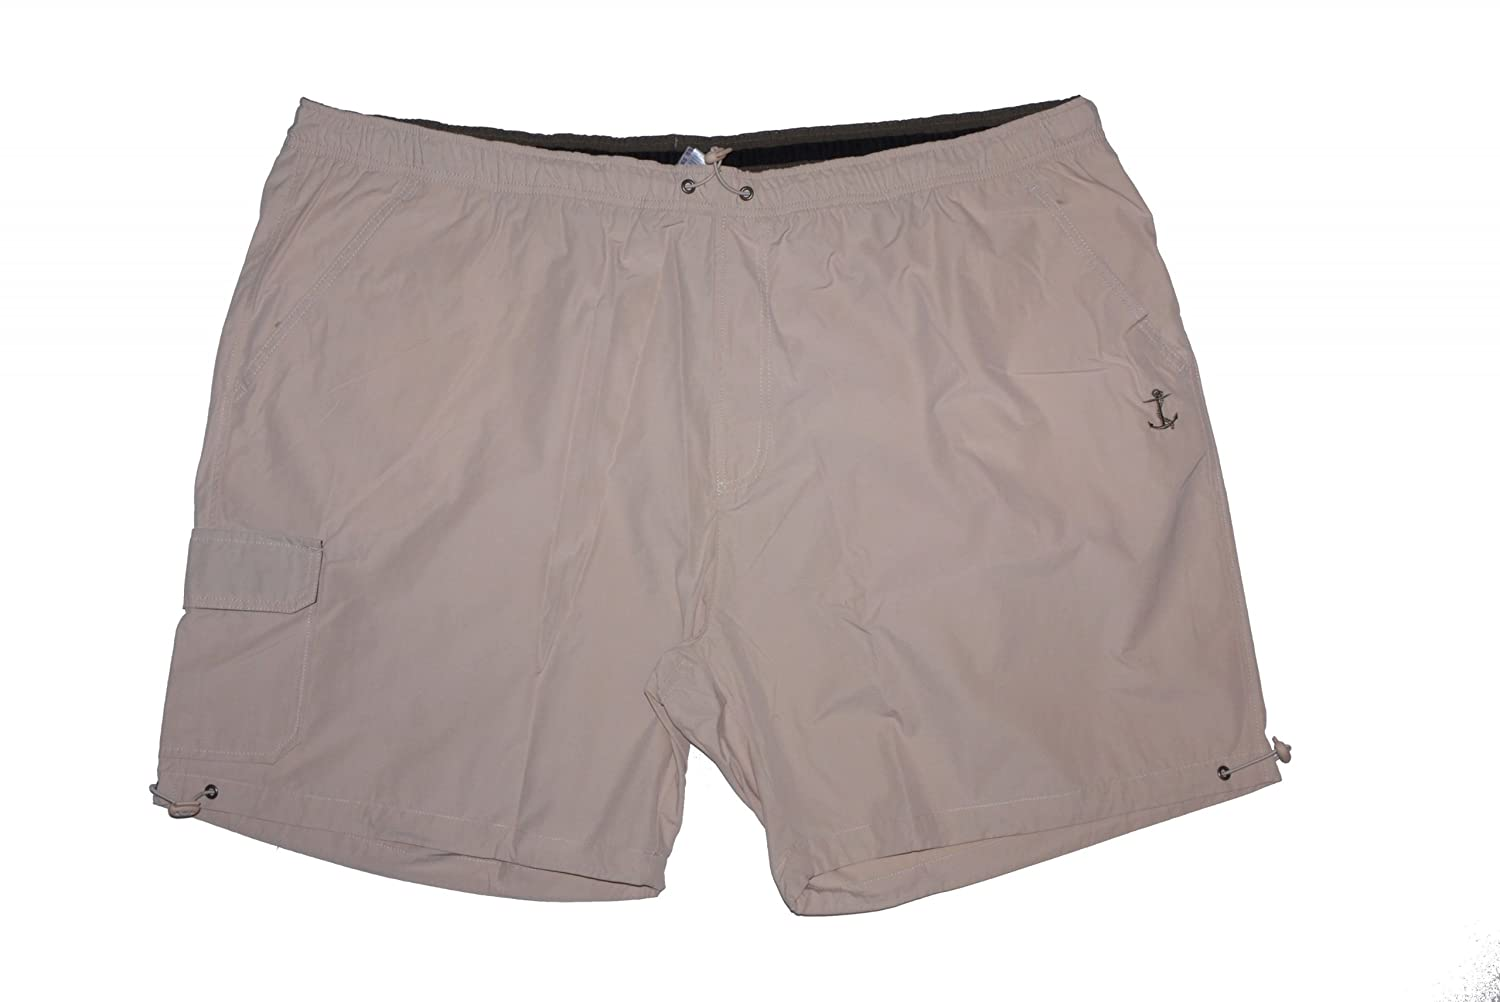 Leisure and Swimming Shorts in over sizes up to 10XL, Sand